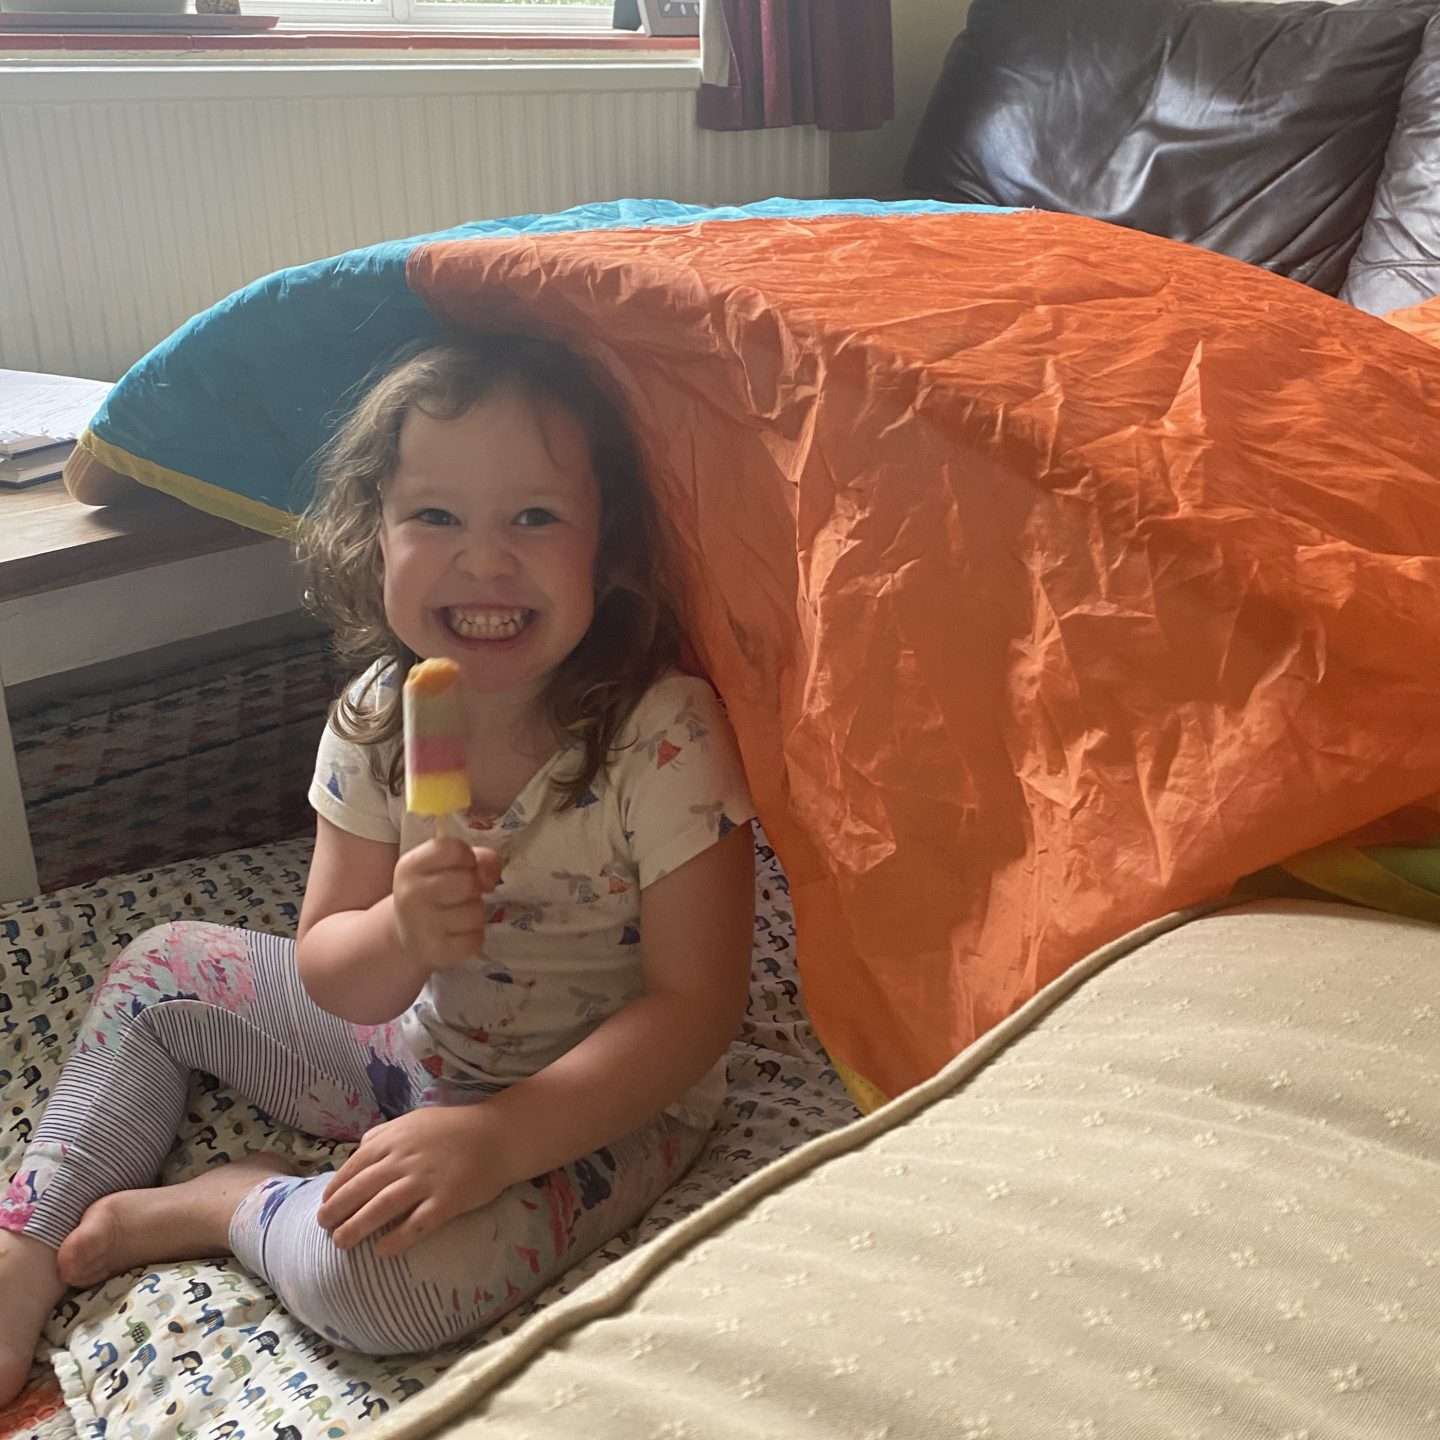 a young girl eating an ice lolly under a coloured parachute for Glasthomebury